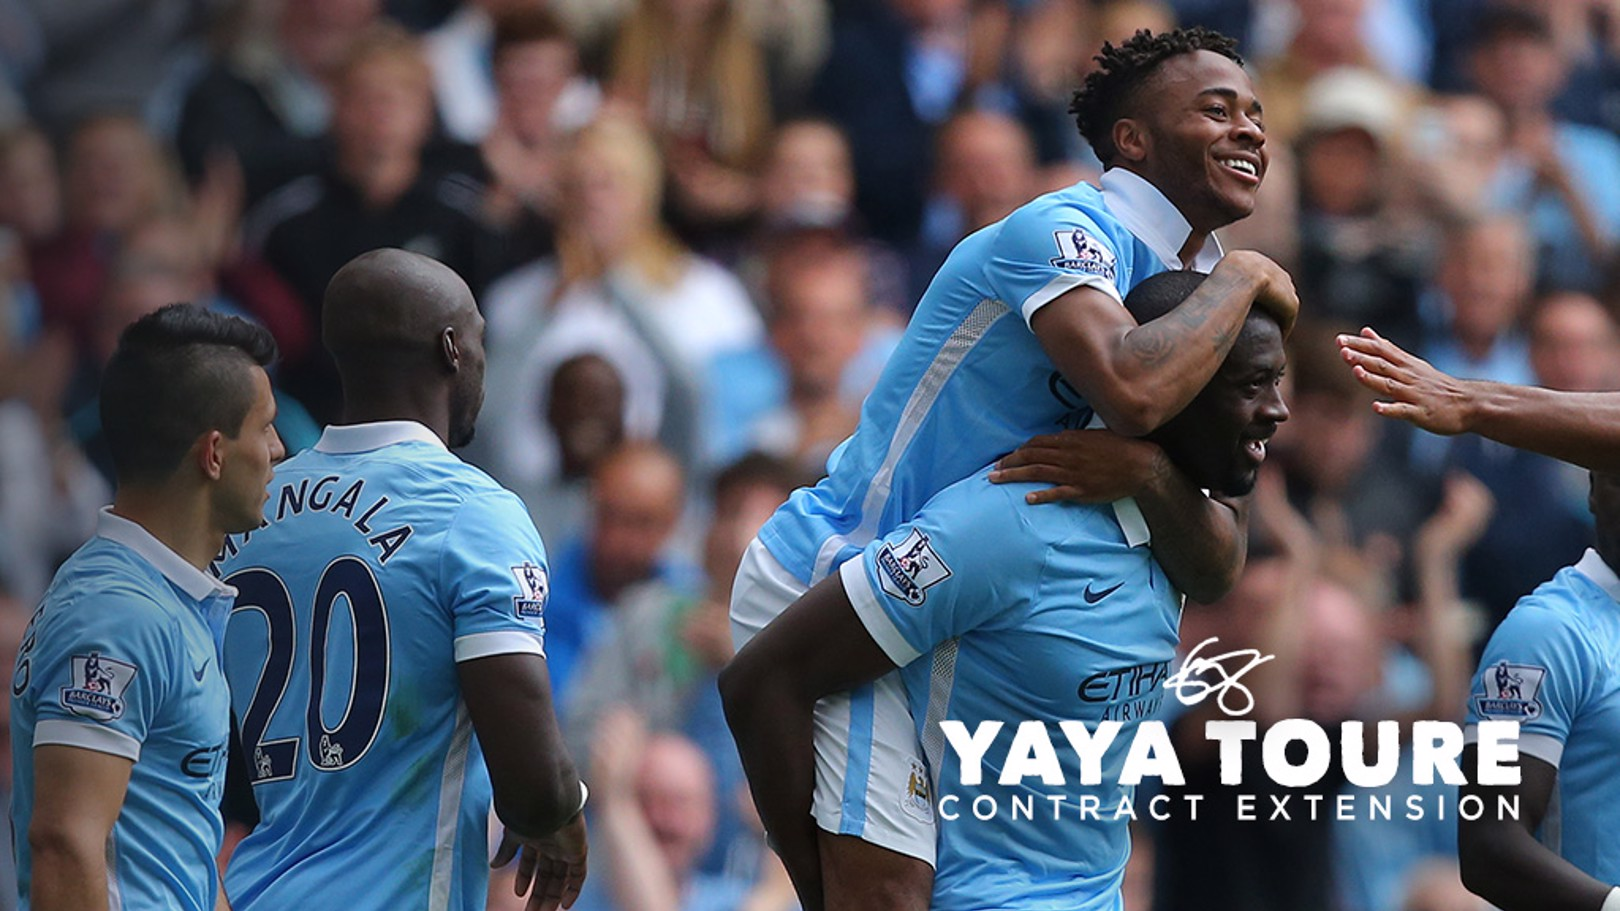 BLUE BOYS: Raheem Sterling says he is learning a lot from Yaya Toure